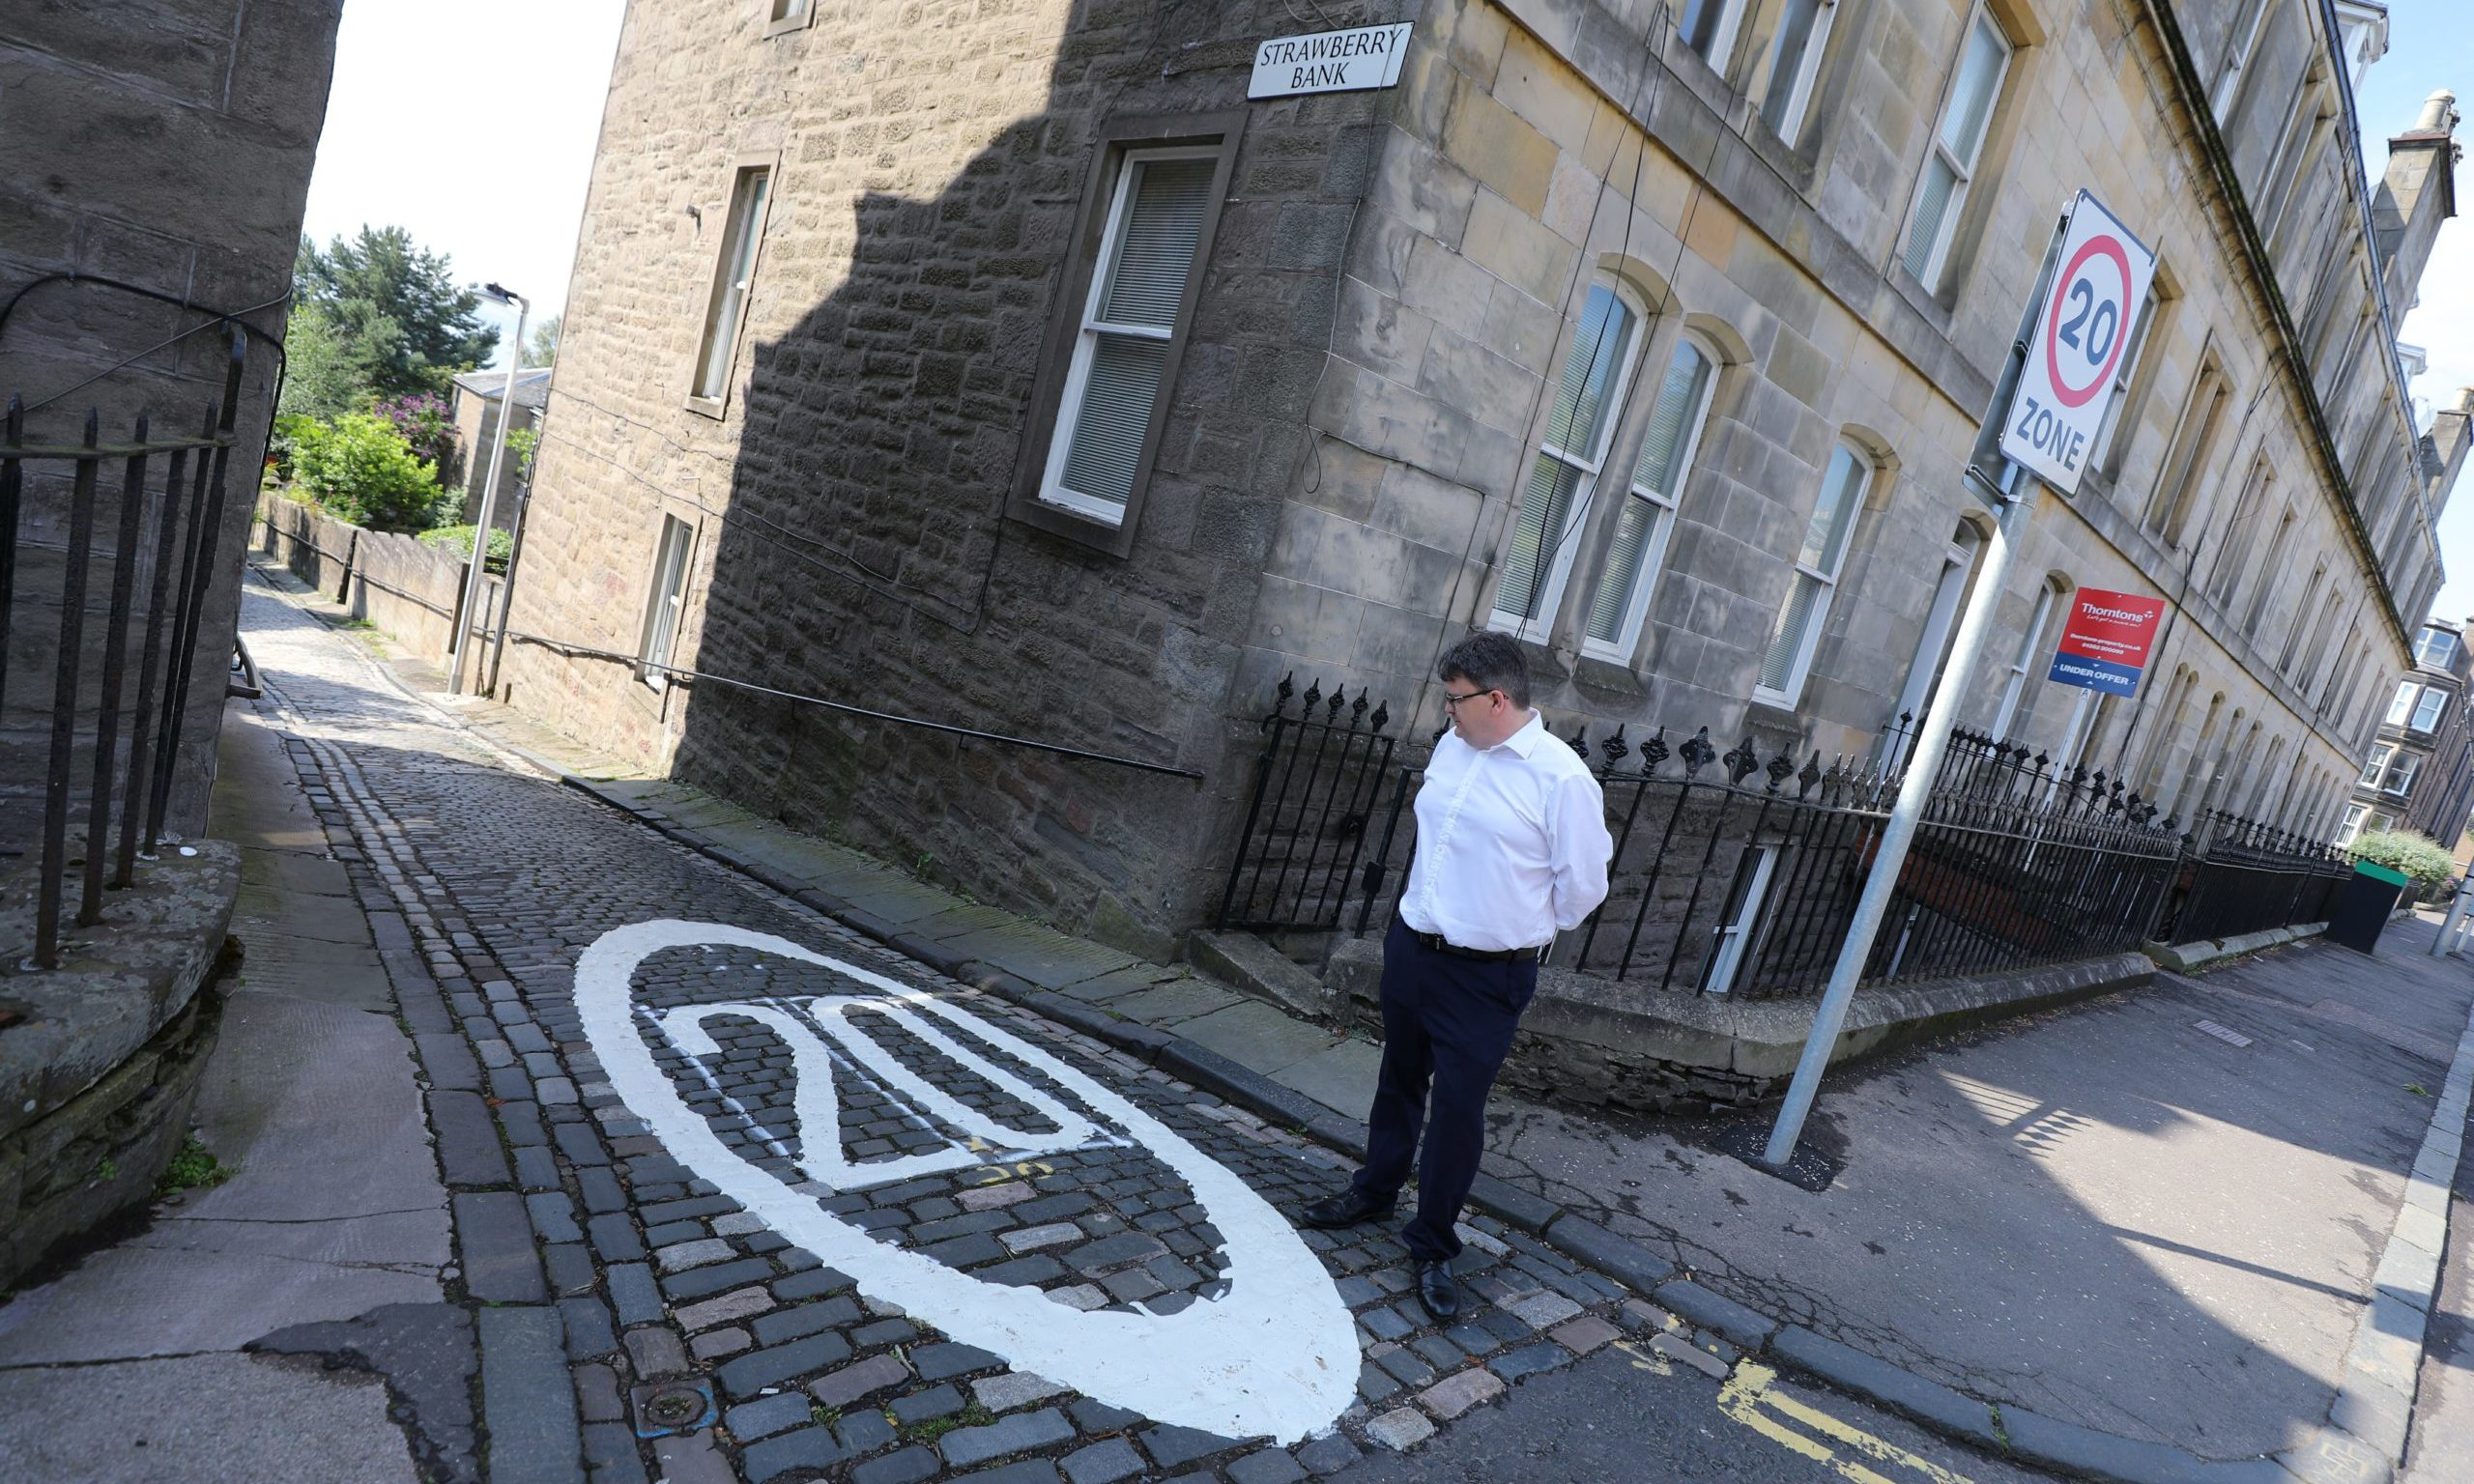 Councillor Richard McCready beside the 20mph sign, which has not been well-received by local residents.